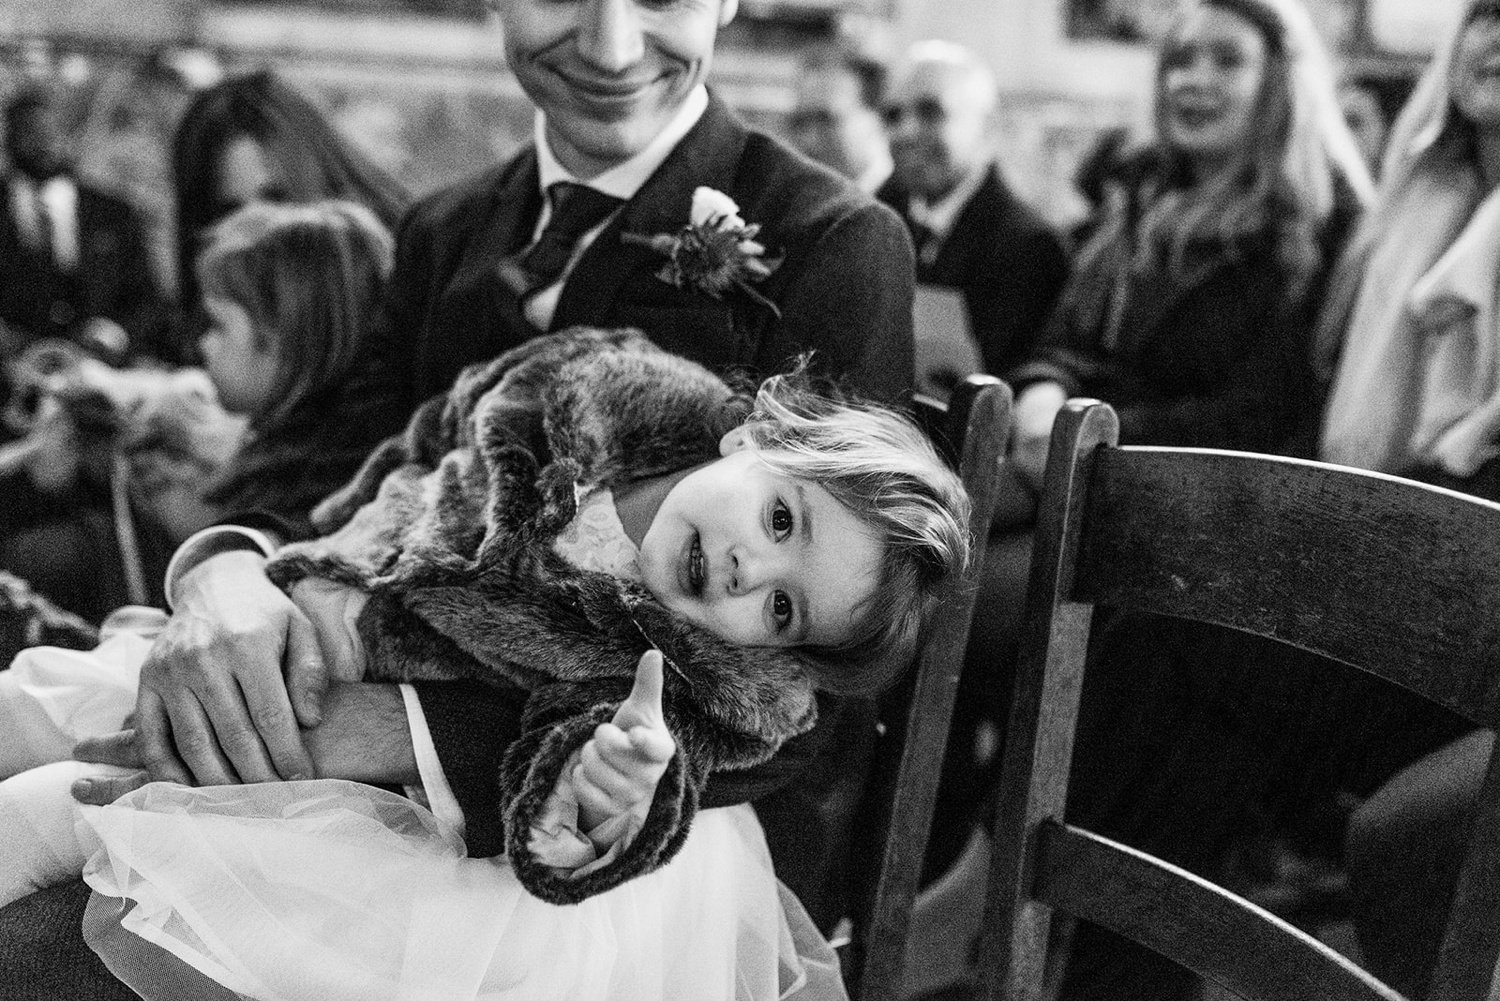 Candid black and white shot of little girl at Asylum chapel